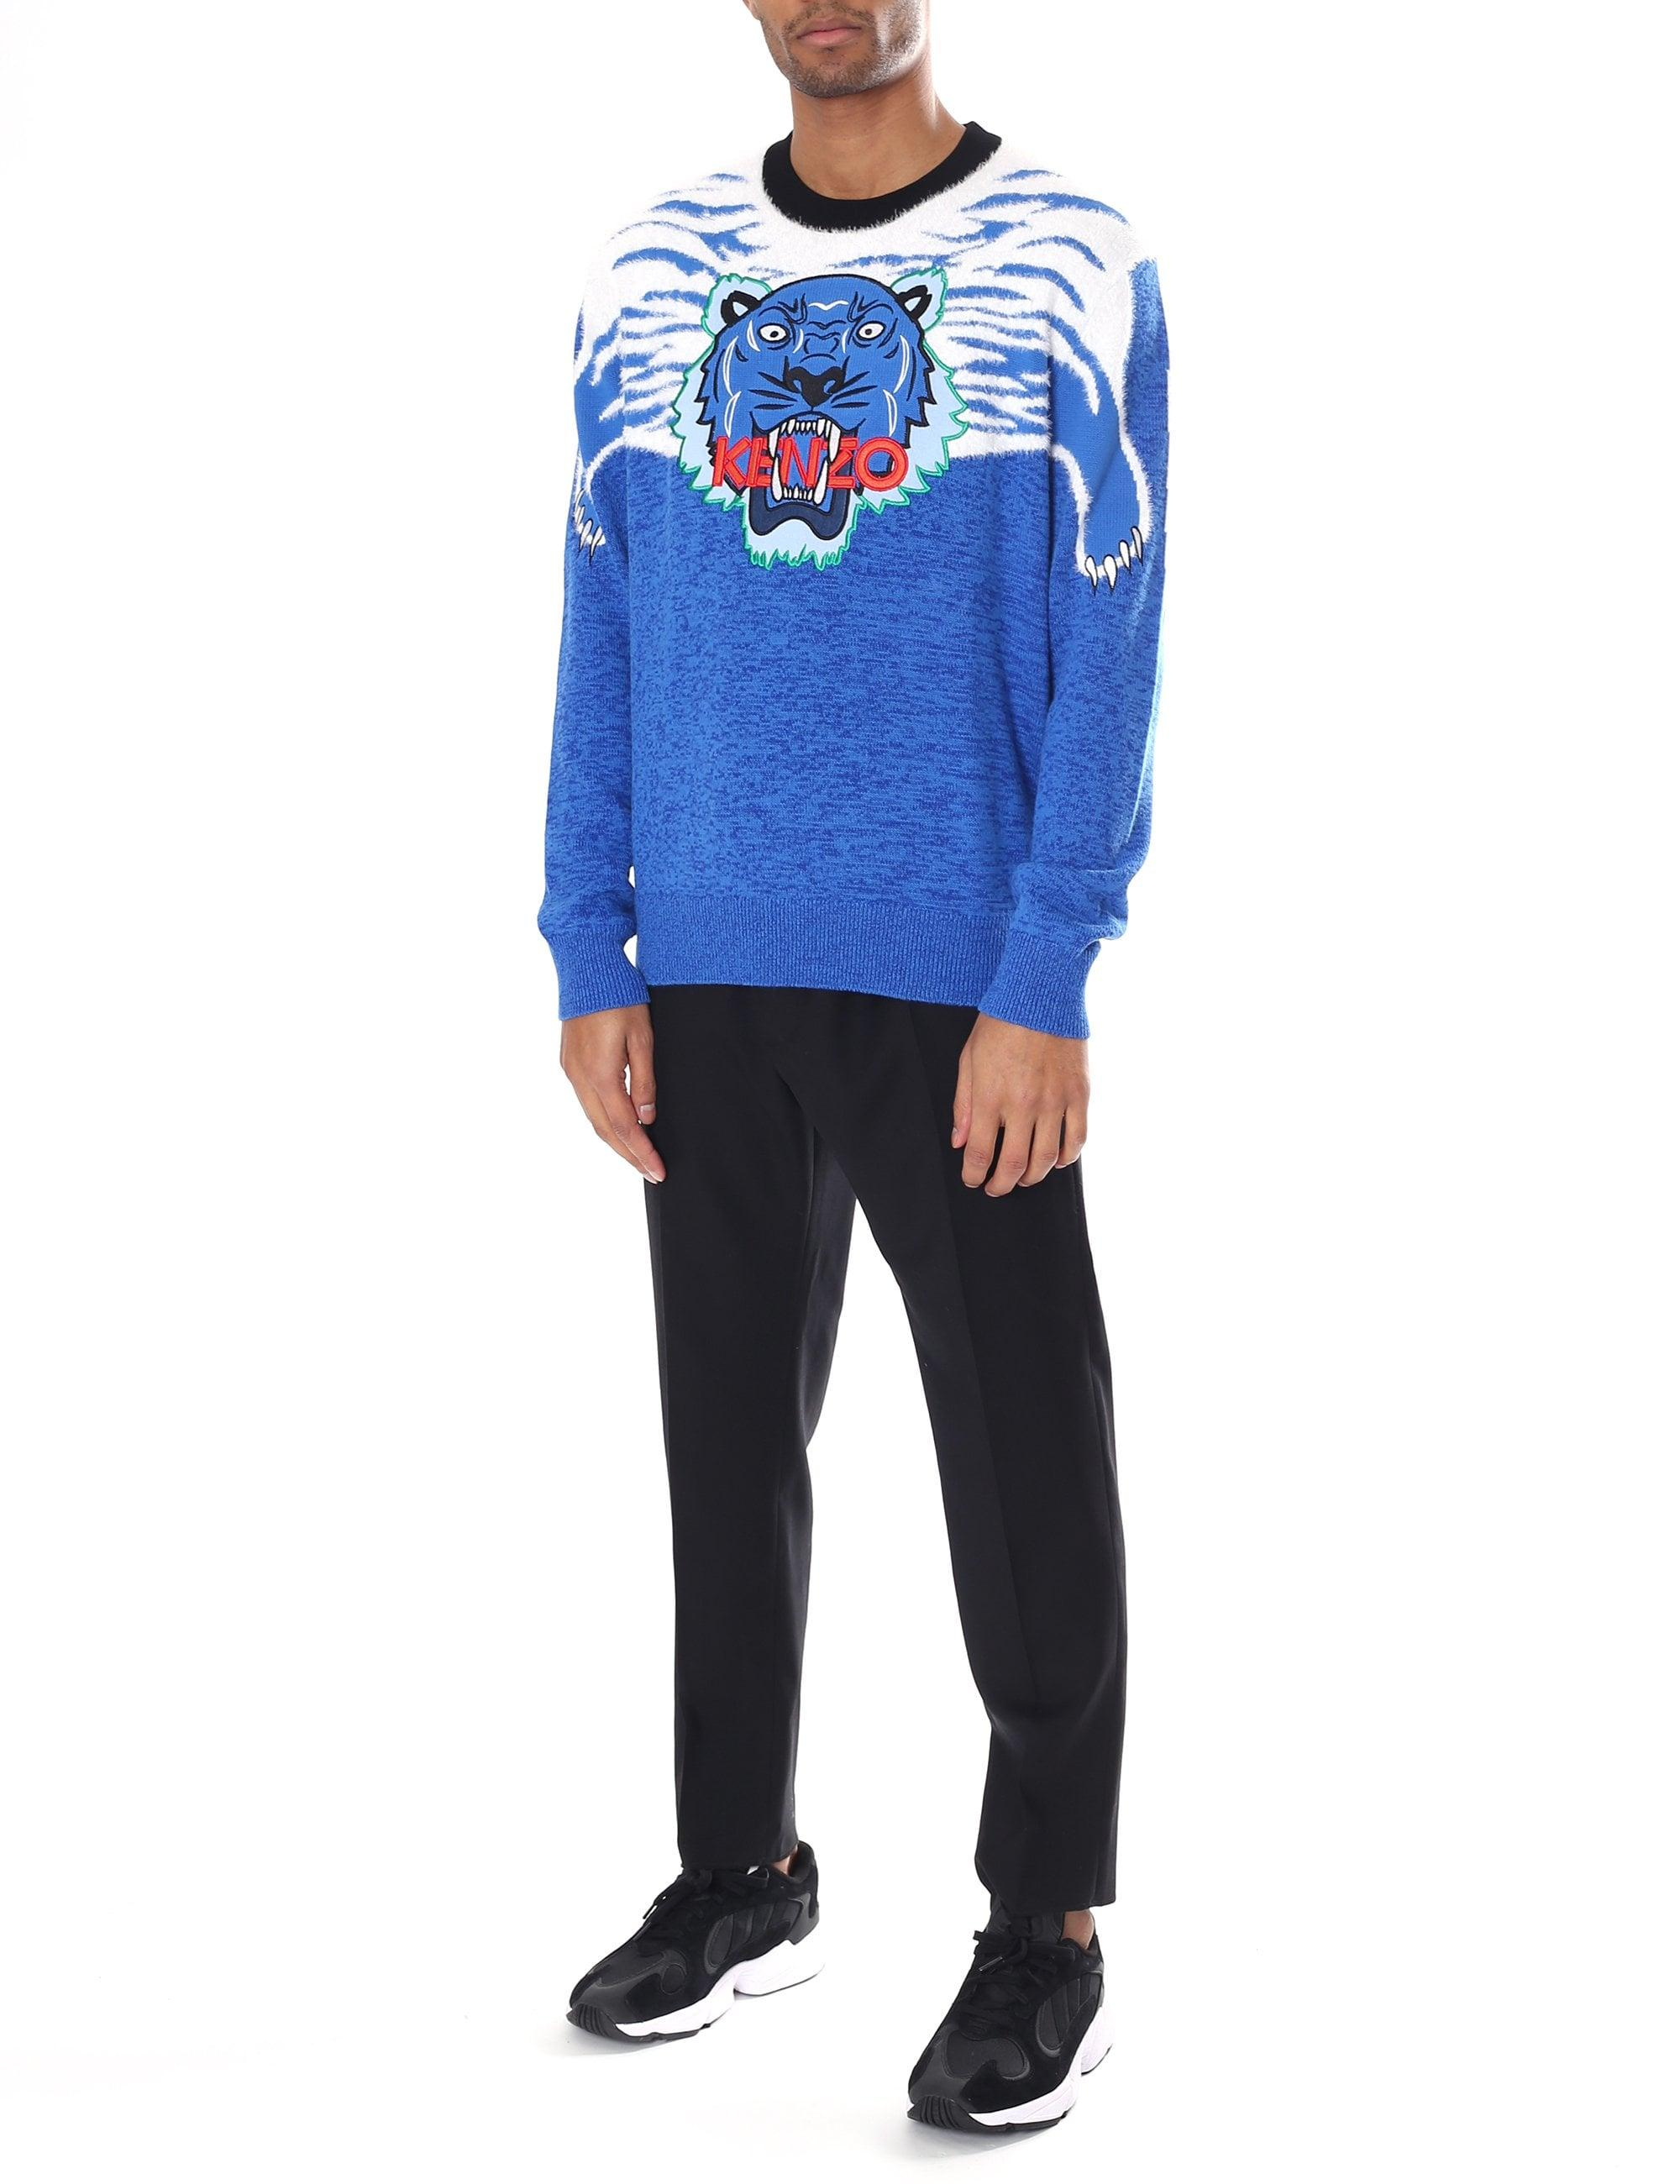 7c2a6a6970 KENZO Patterned Icon Tiger Sweater in Blue for Men - Save 20% - Lyst